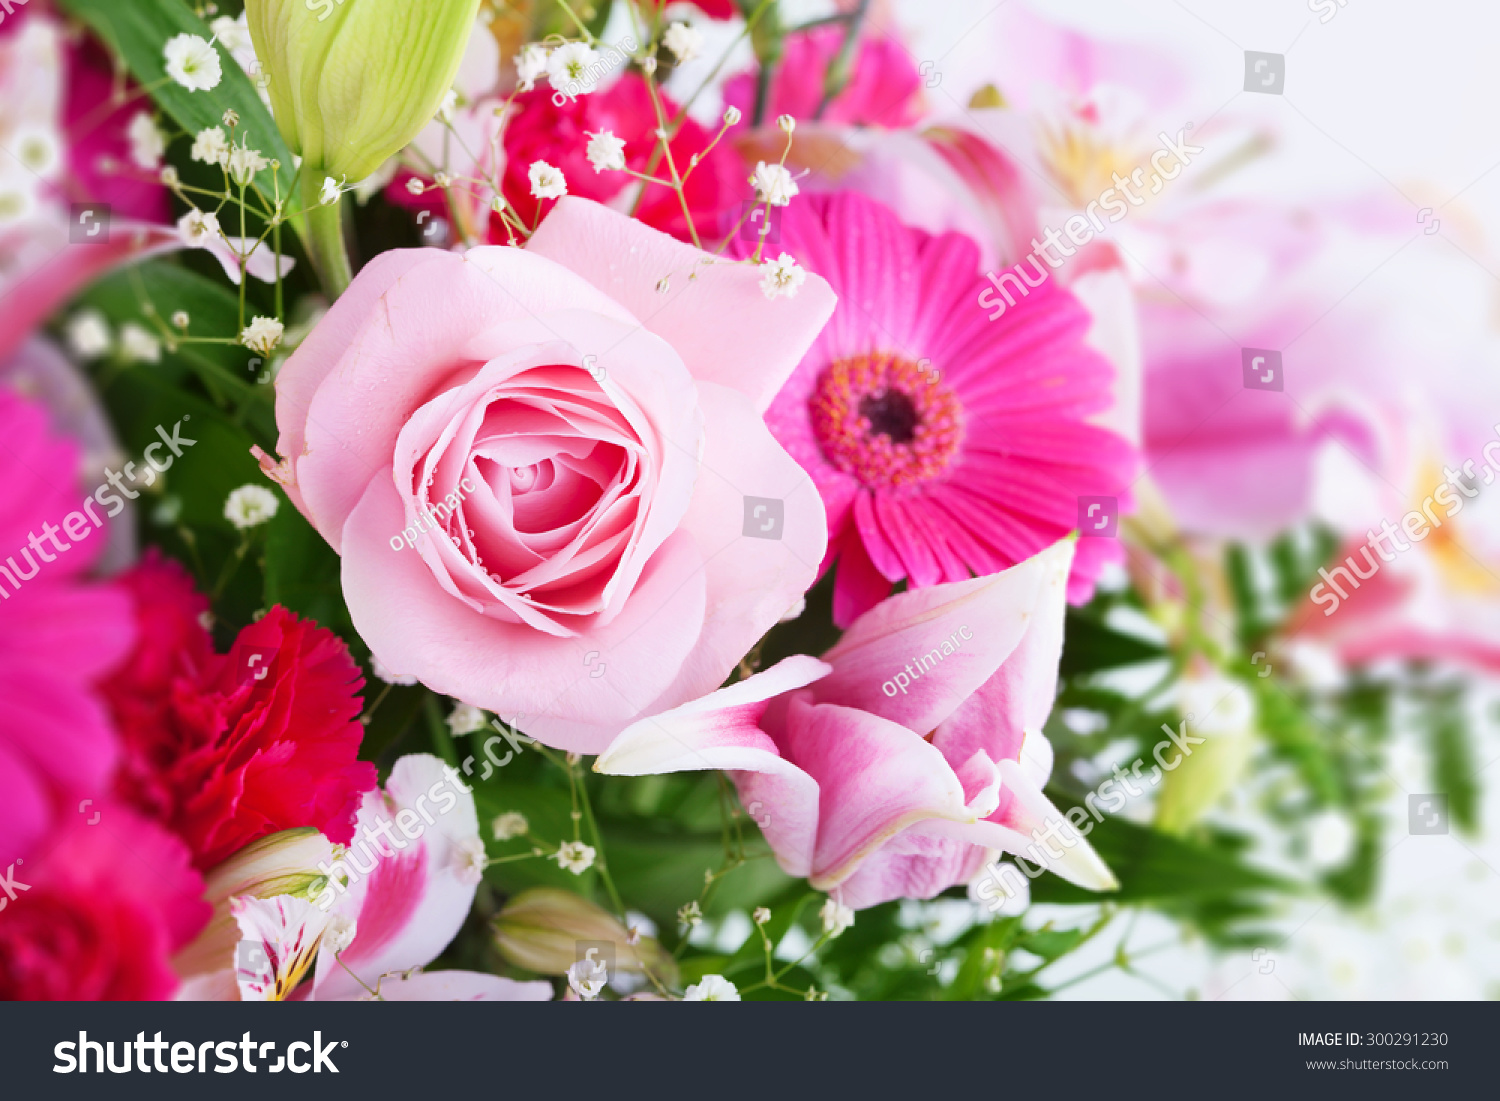 Pinkish Tone Flower Bouquet Focus On Stock Photo Edit Now